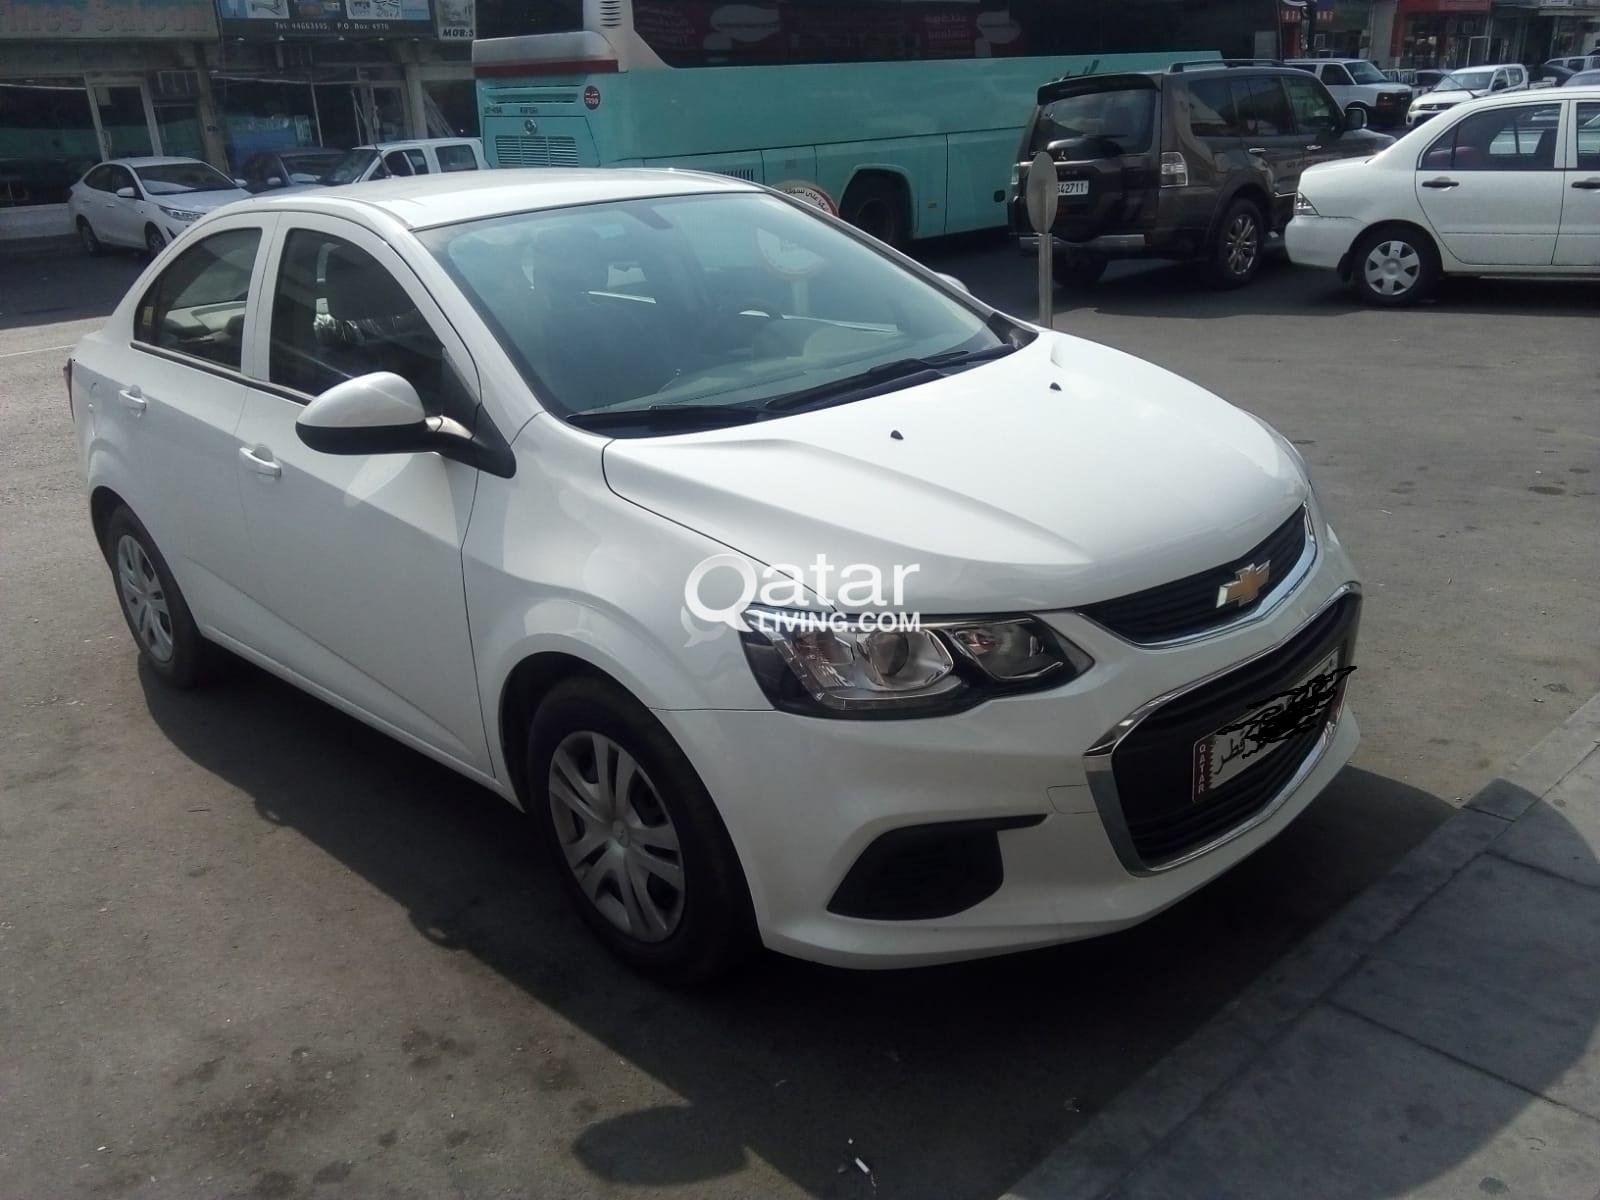 2019 MODEL CHEVROLET AVEO, MONTHLY 1300 QR ONLY